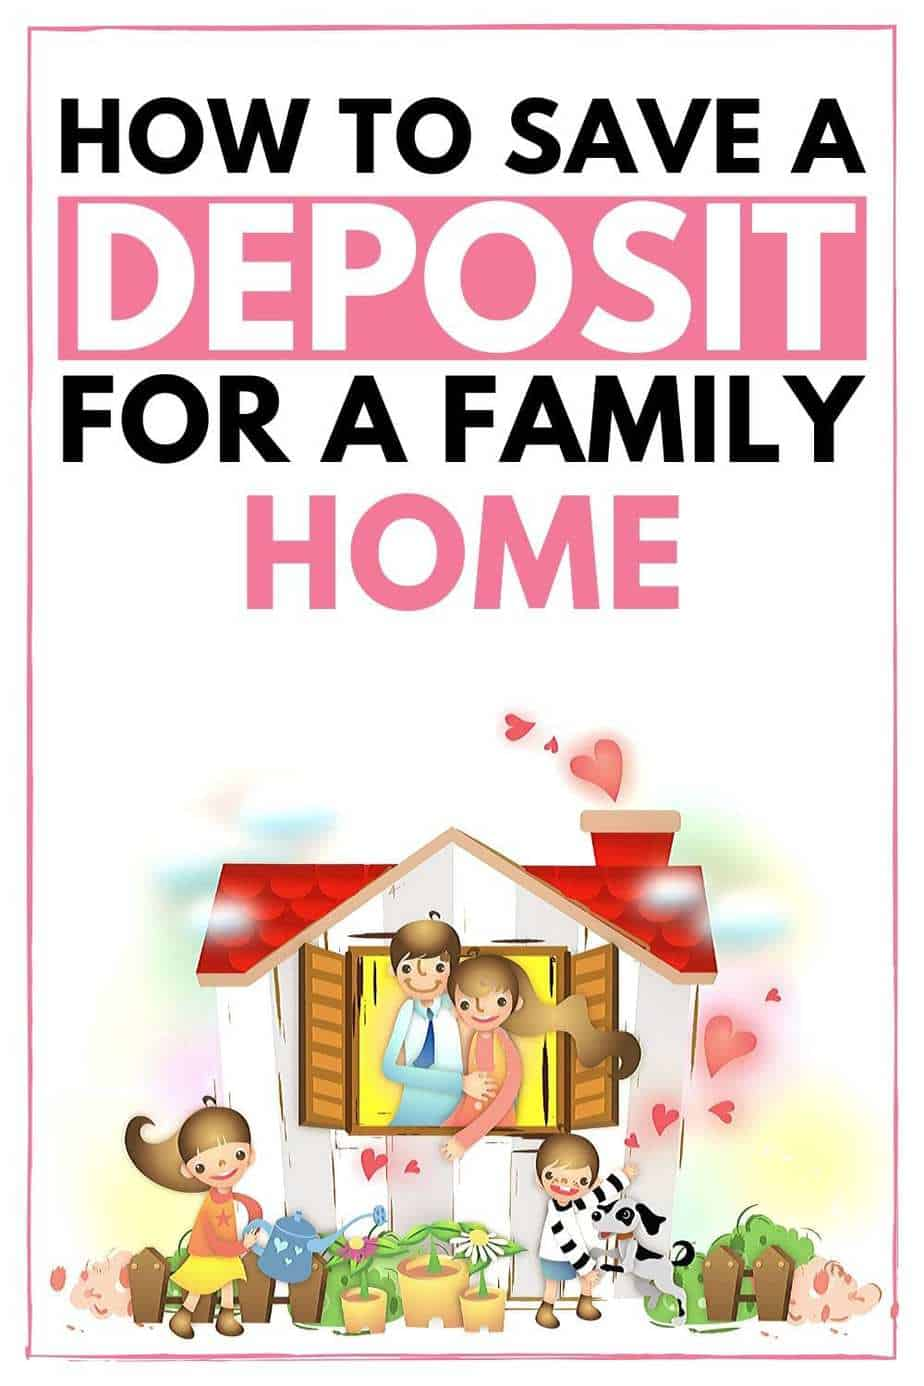 How to save a deposit for a family home